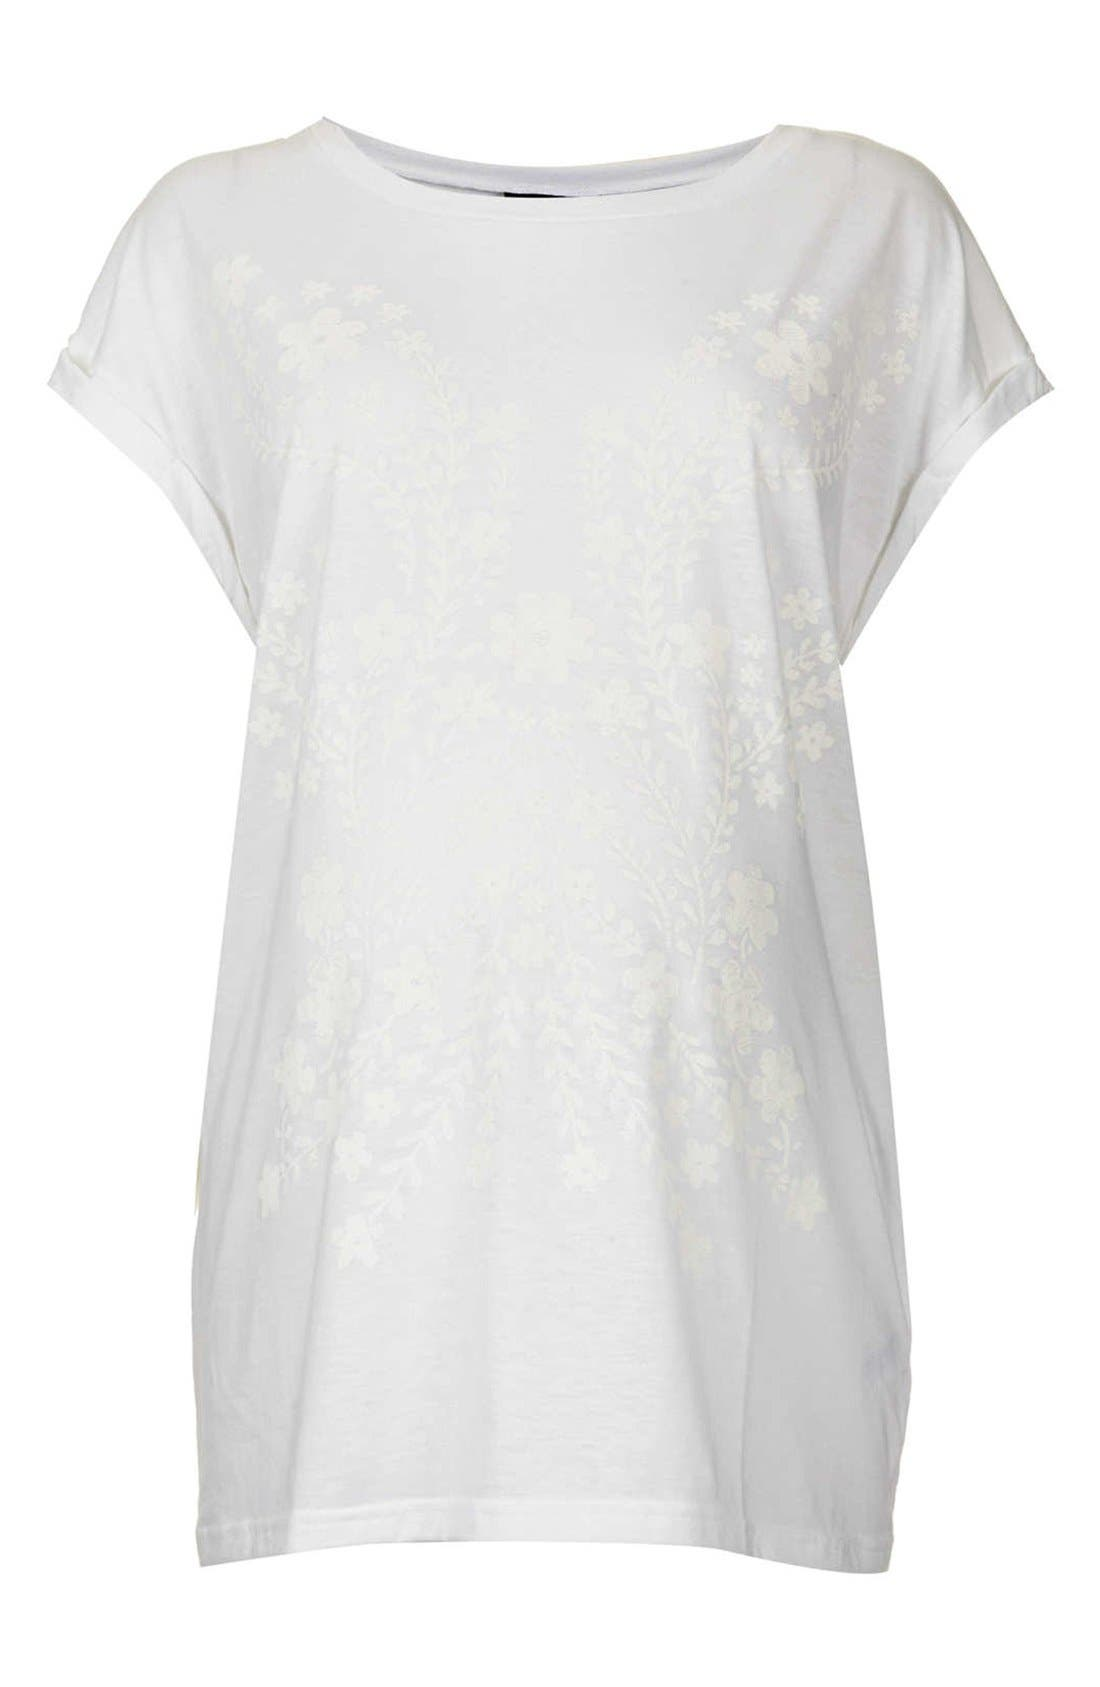 Main Image - Topshop Floral Placement Maternity Tee